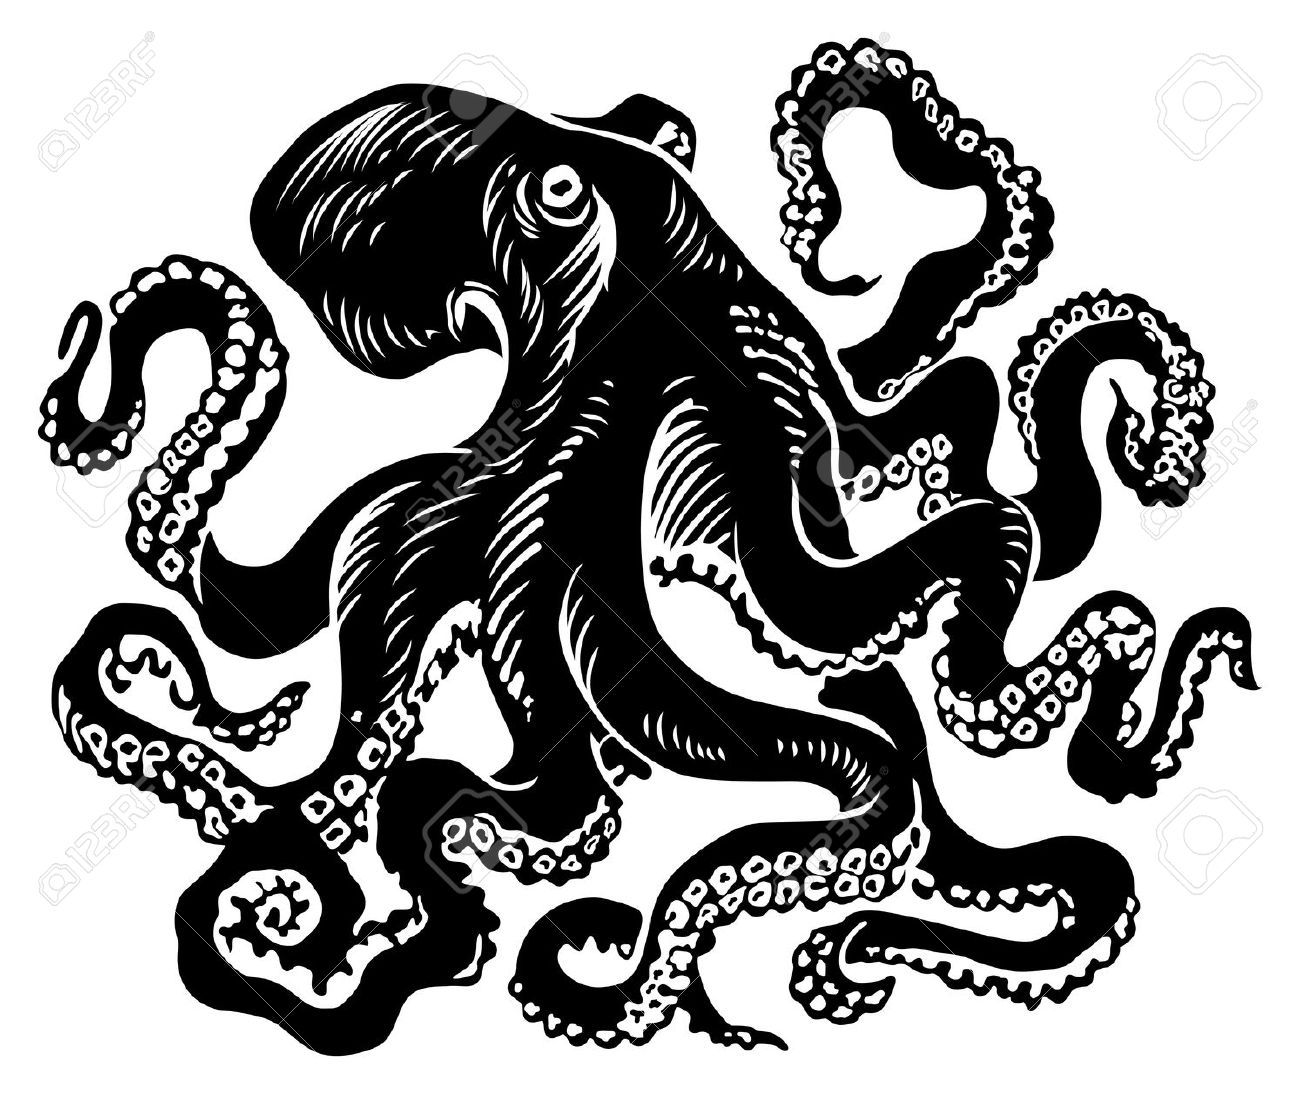 Octopus Illustration Octopus Vector Illustration | octopus ...